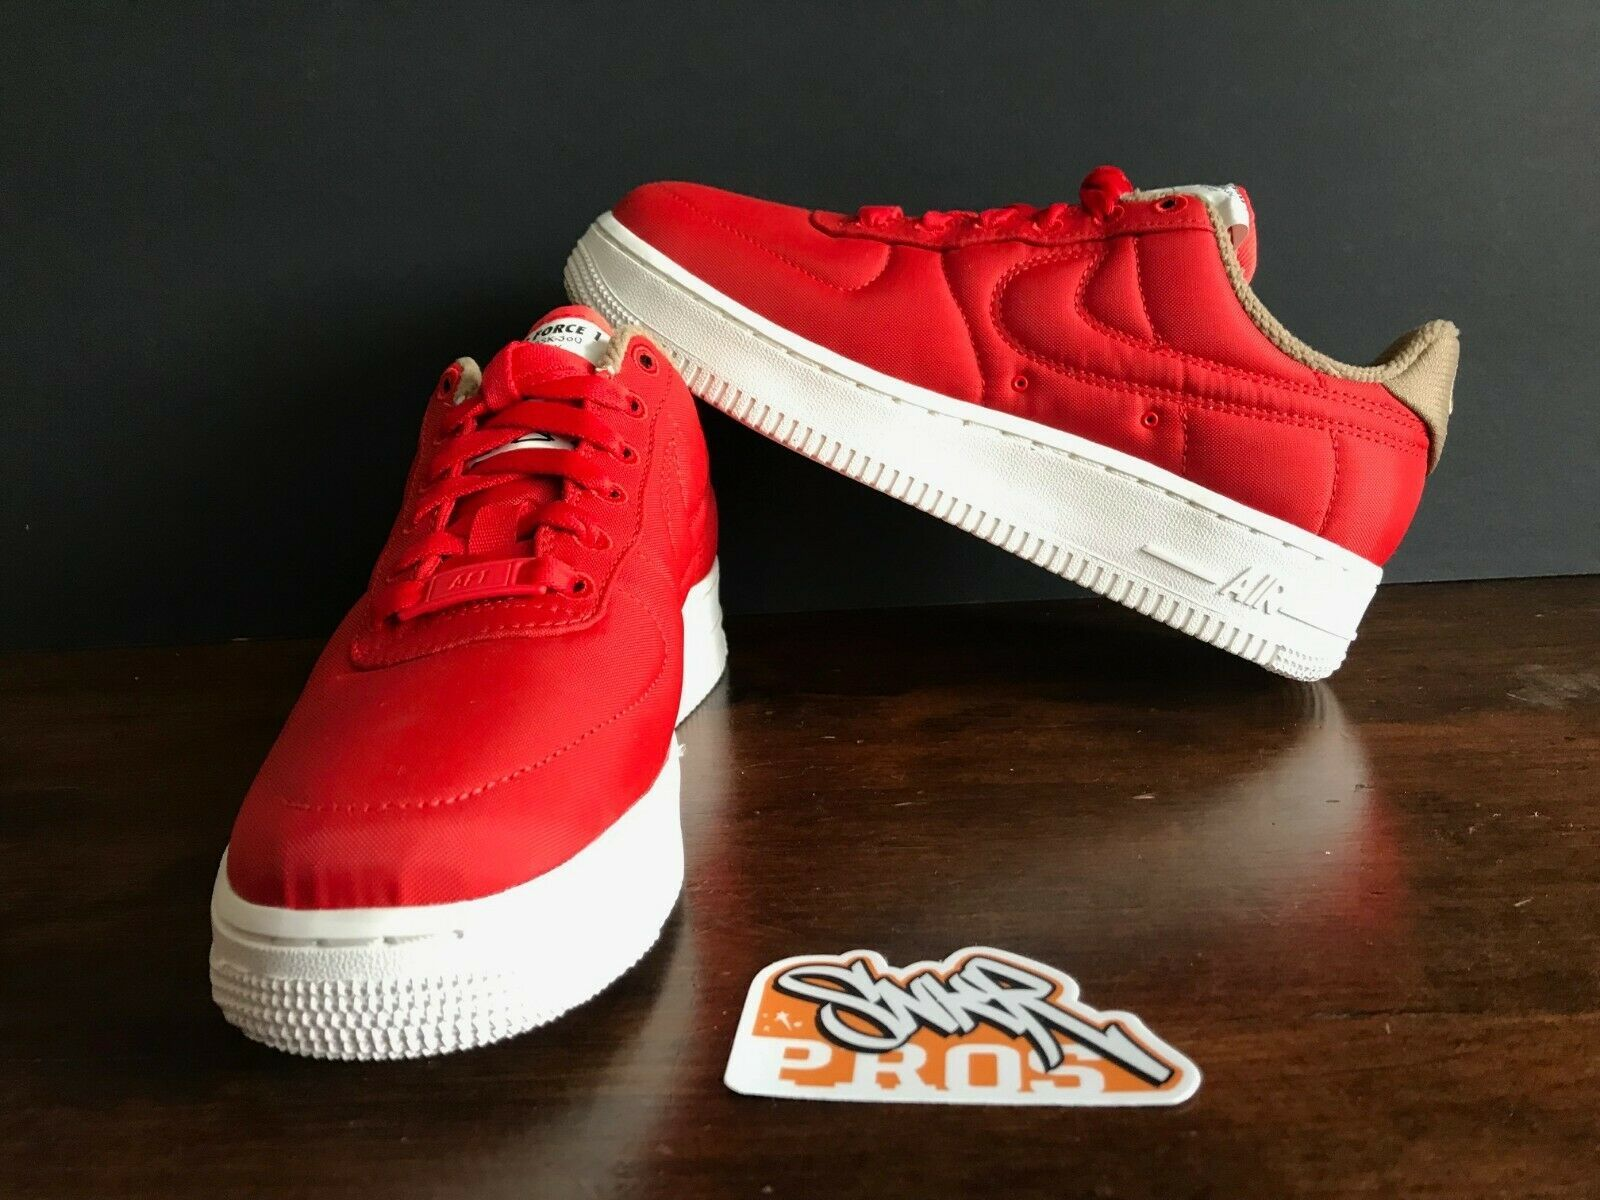 NIKE W AIR FORCE 1 '07 LX HABANERO RED WHITE 898889 600 US WMNS SZ 10